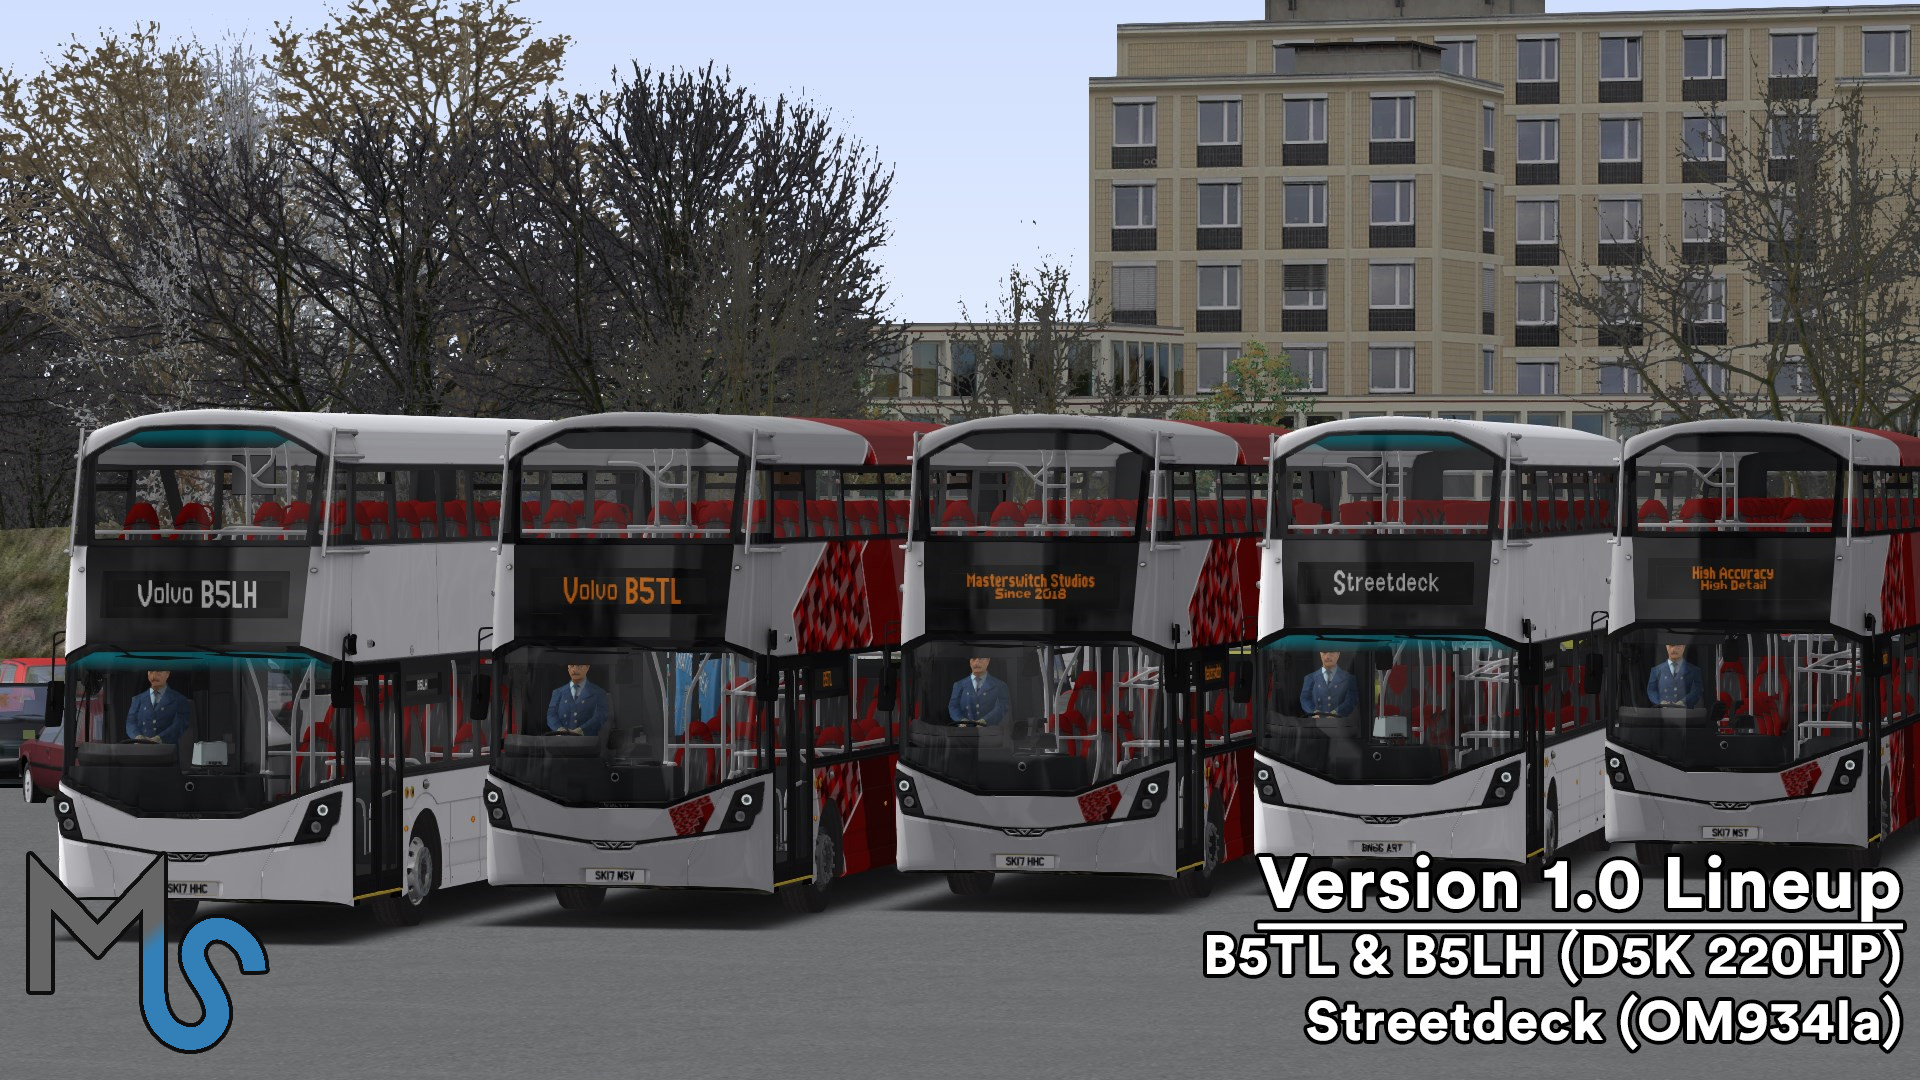 Master' Bus Gen 3 (Download Blocked) | OMSI 2 mods & LOTUS mods